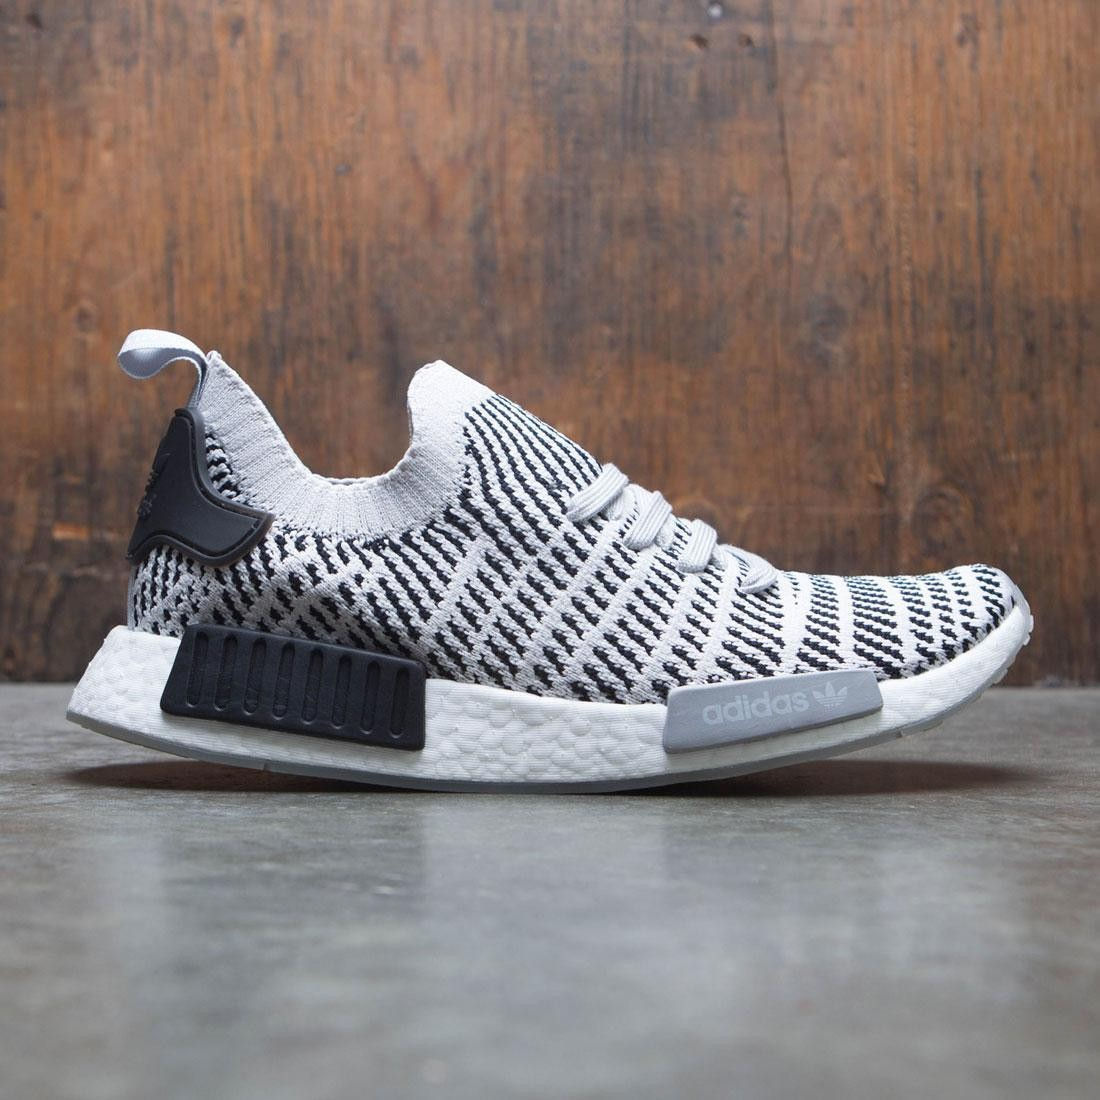 Adidas Men Nmd R1 Stlt Primeknit Gray Grey One Core Black